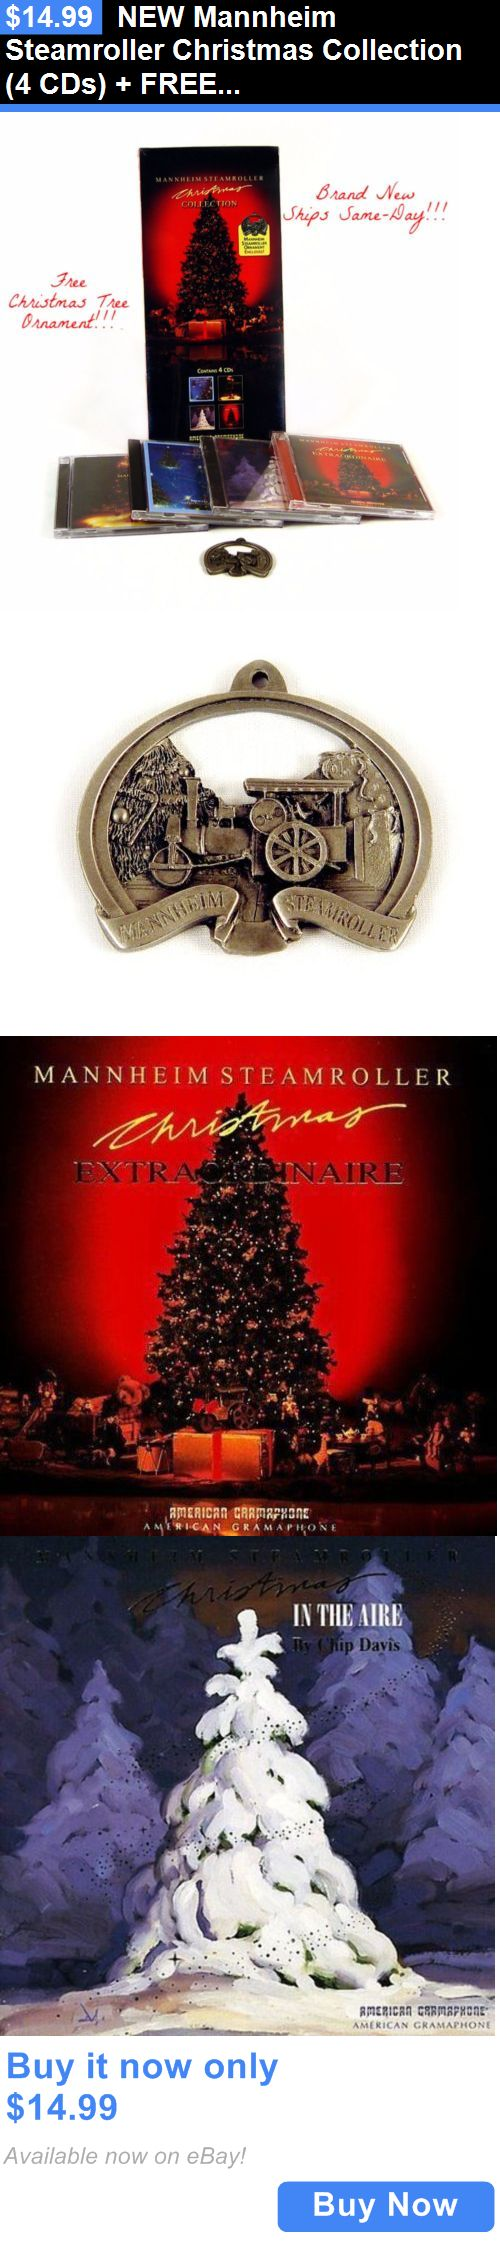 Christmas Songs And Album: New Mannheim Steamroller Christmas Collection (4 Cds) + Free Christmas Ornament BUY IT NOW ONLY: $14.99